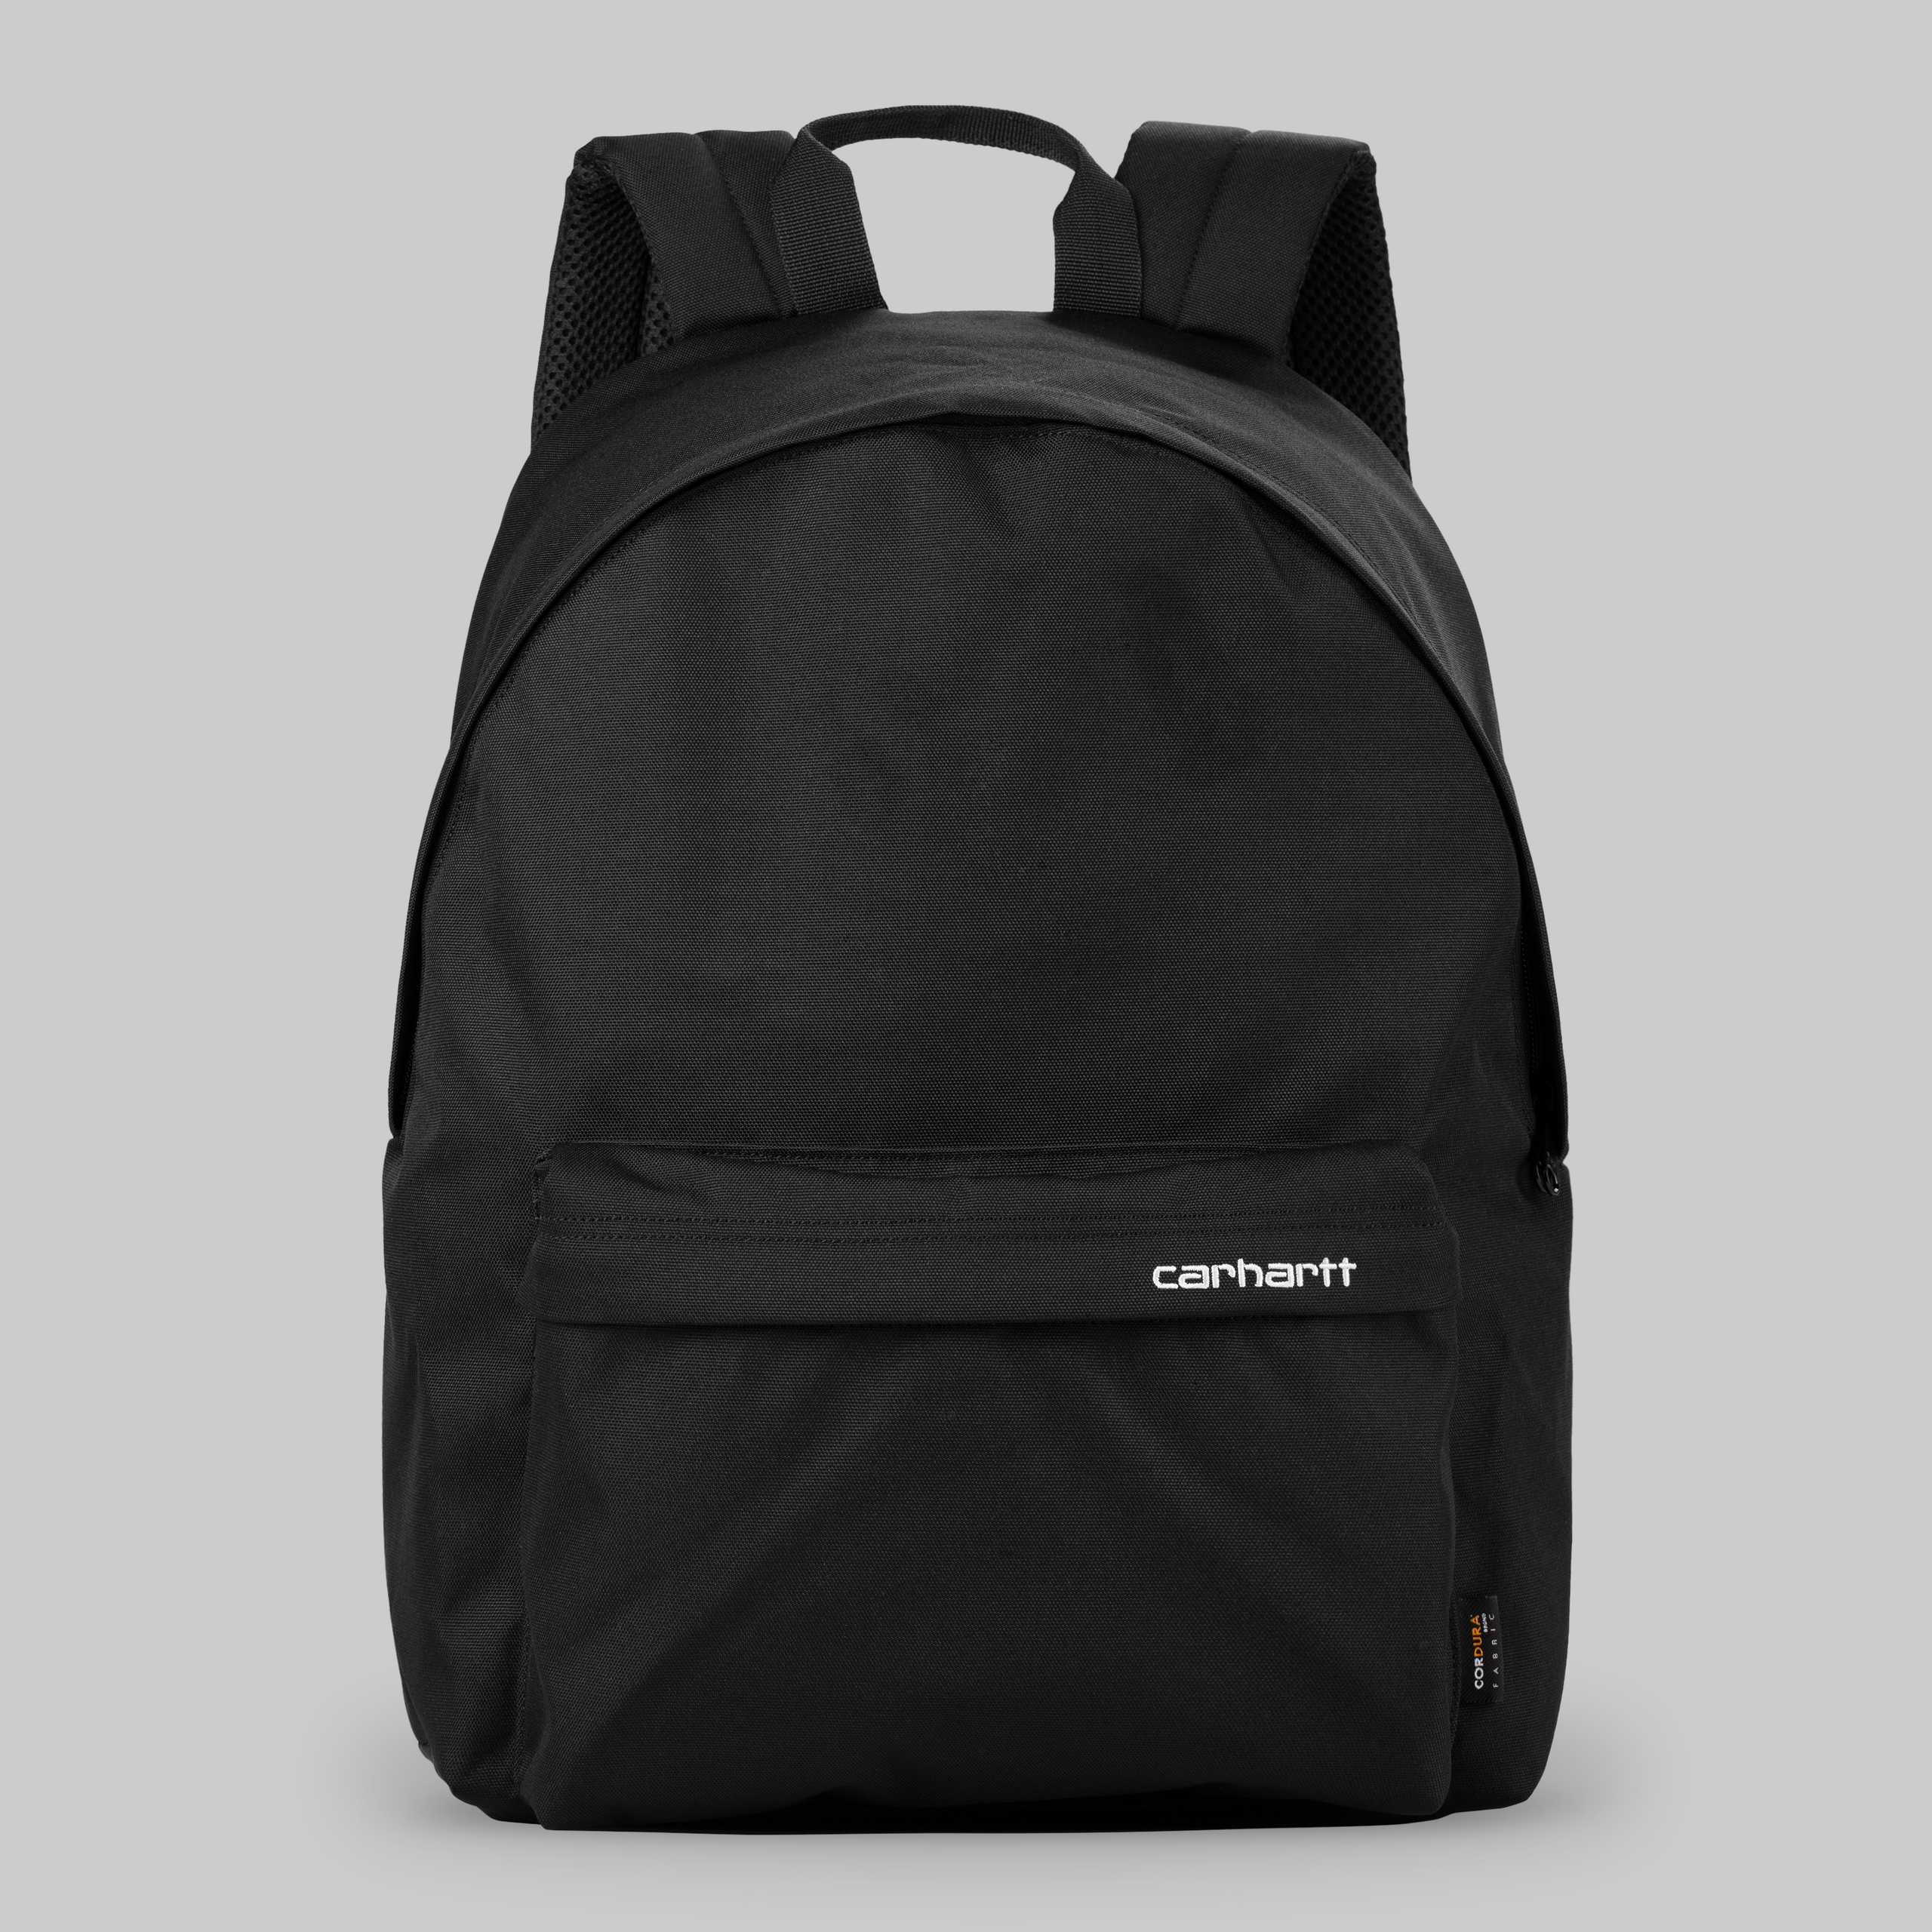 payton-backpack-black-white-714